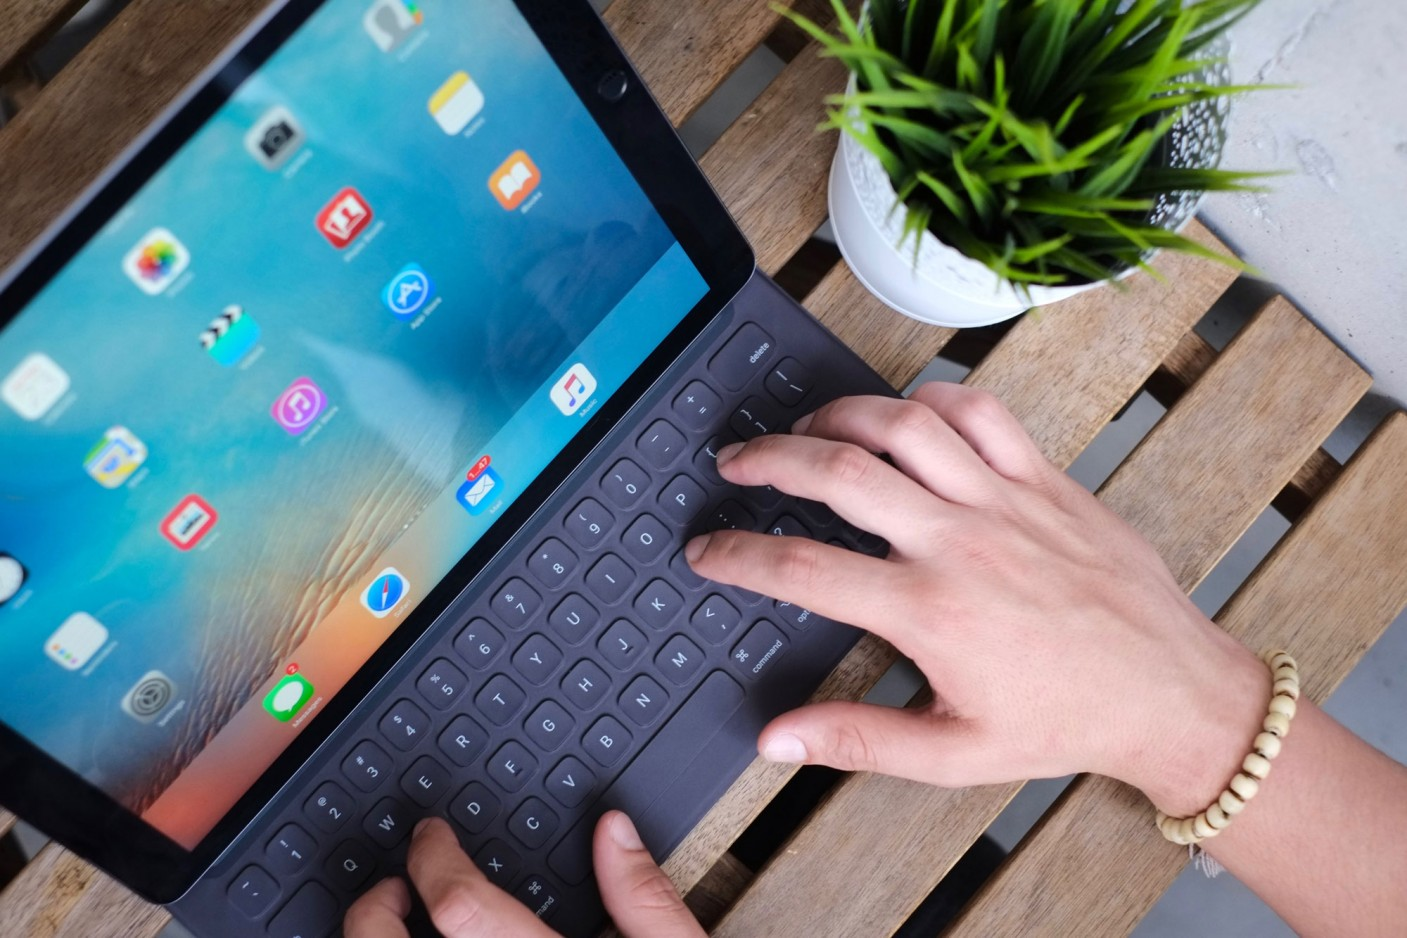 Apple Smart Keyboard for iPad Pro lifestyle